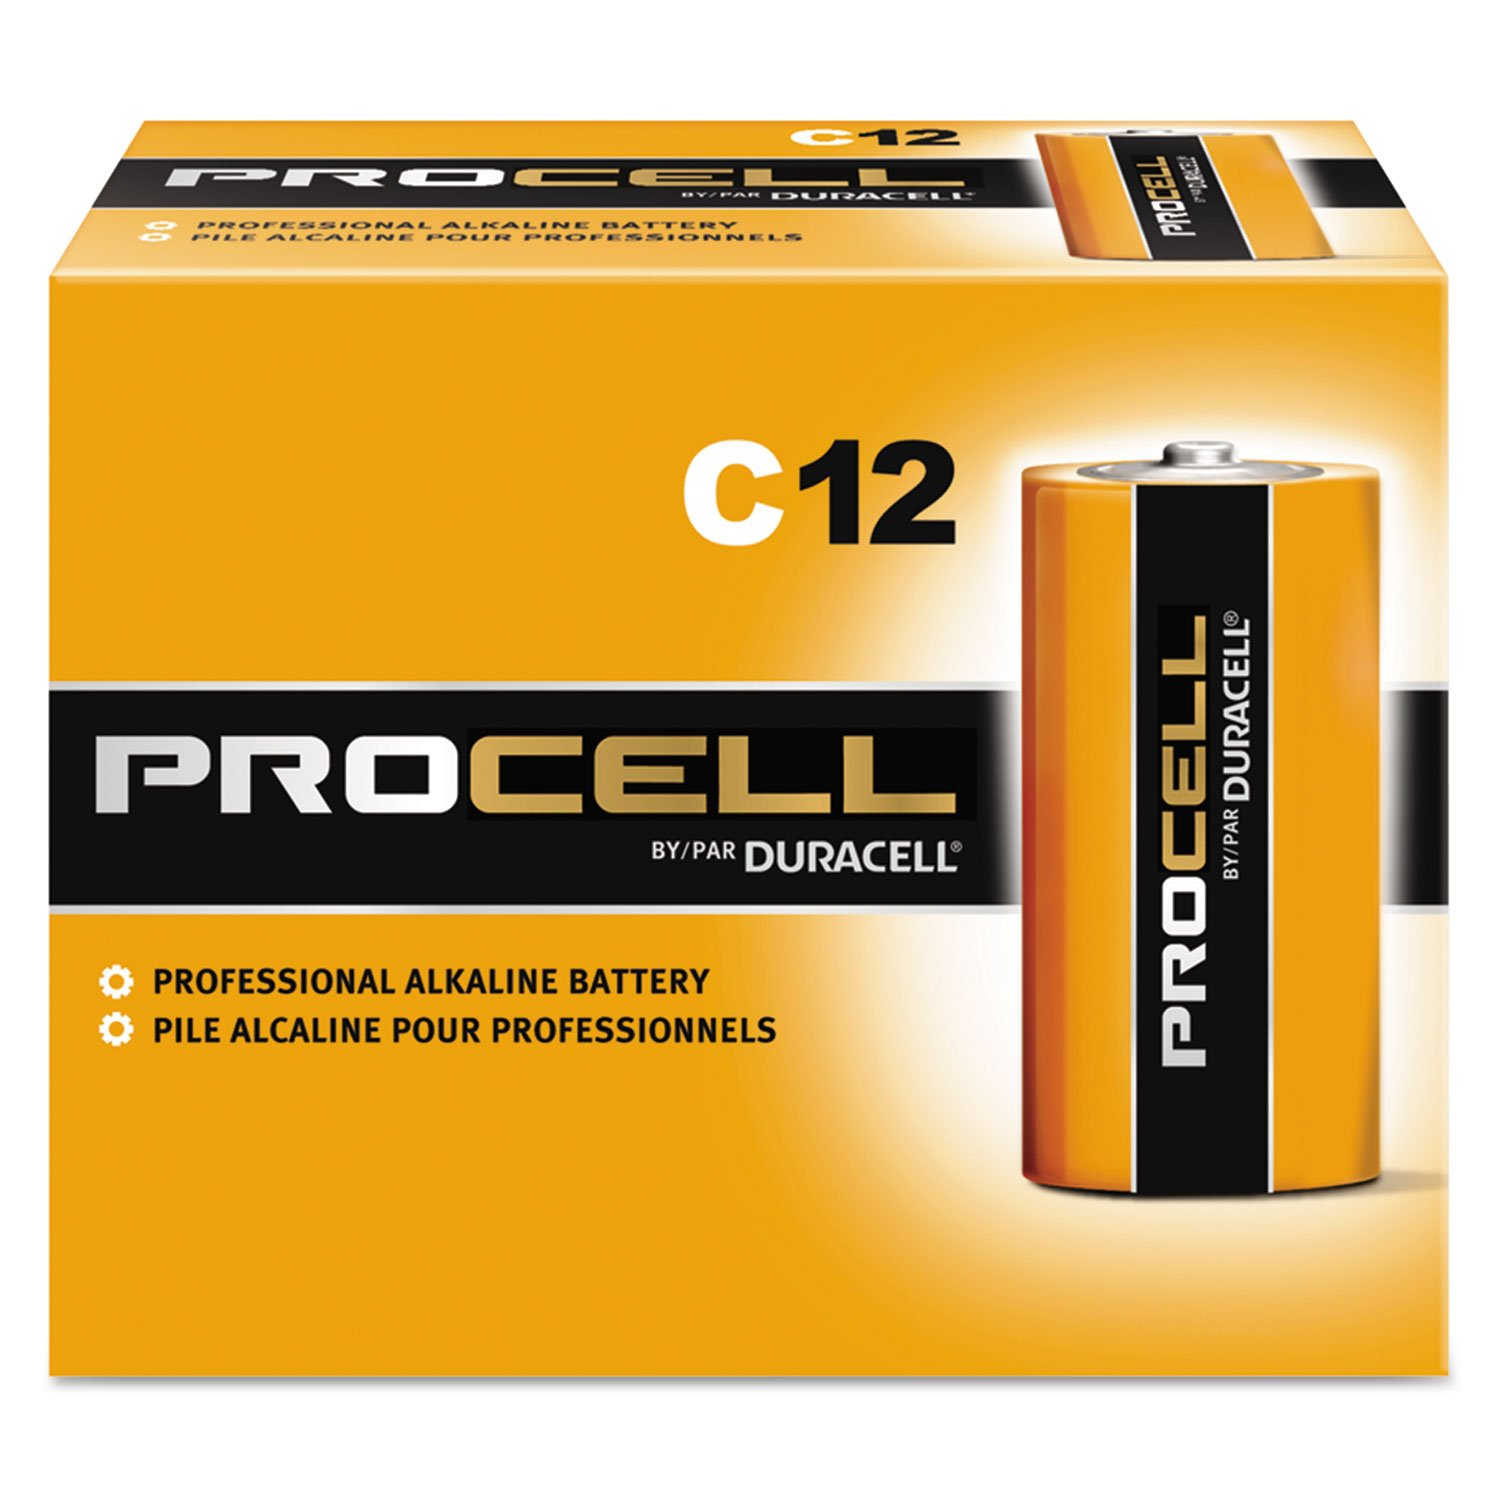 DURACELL C12 PROCELL Professional Alkaline Battery, 48 Count by Duracell